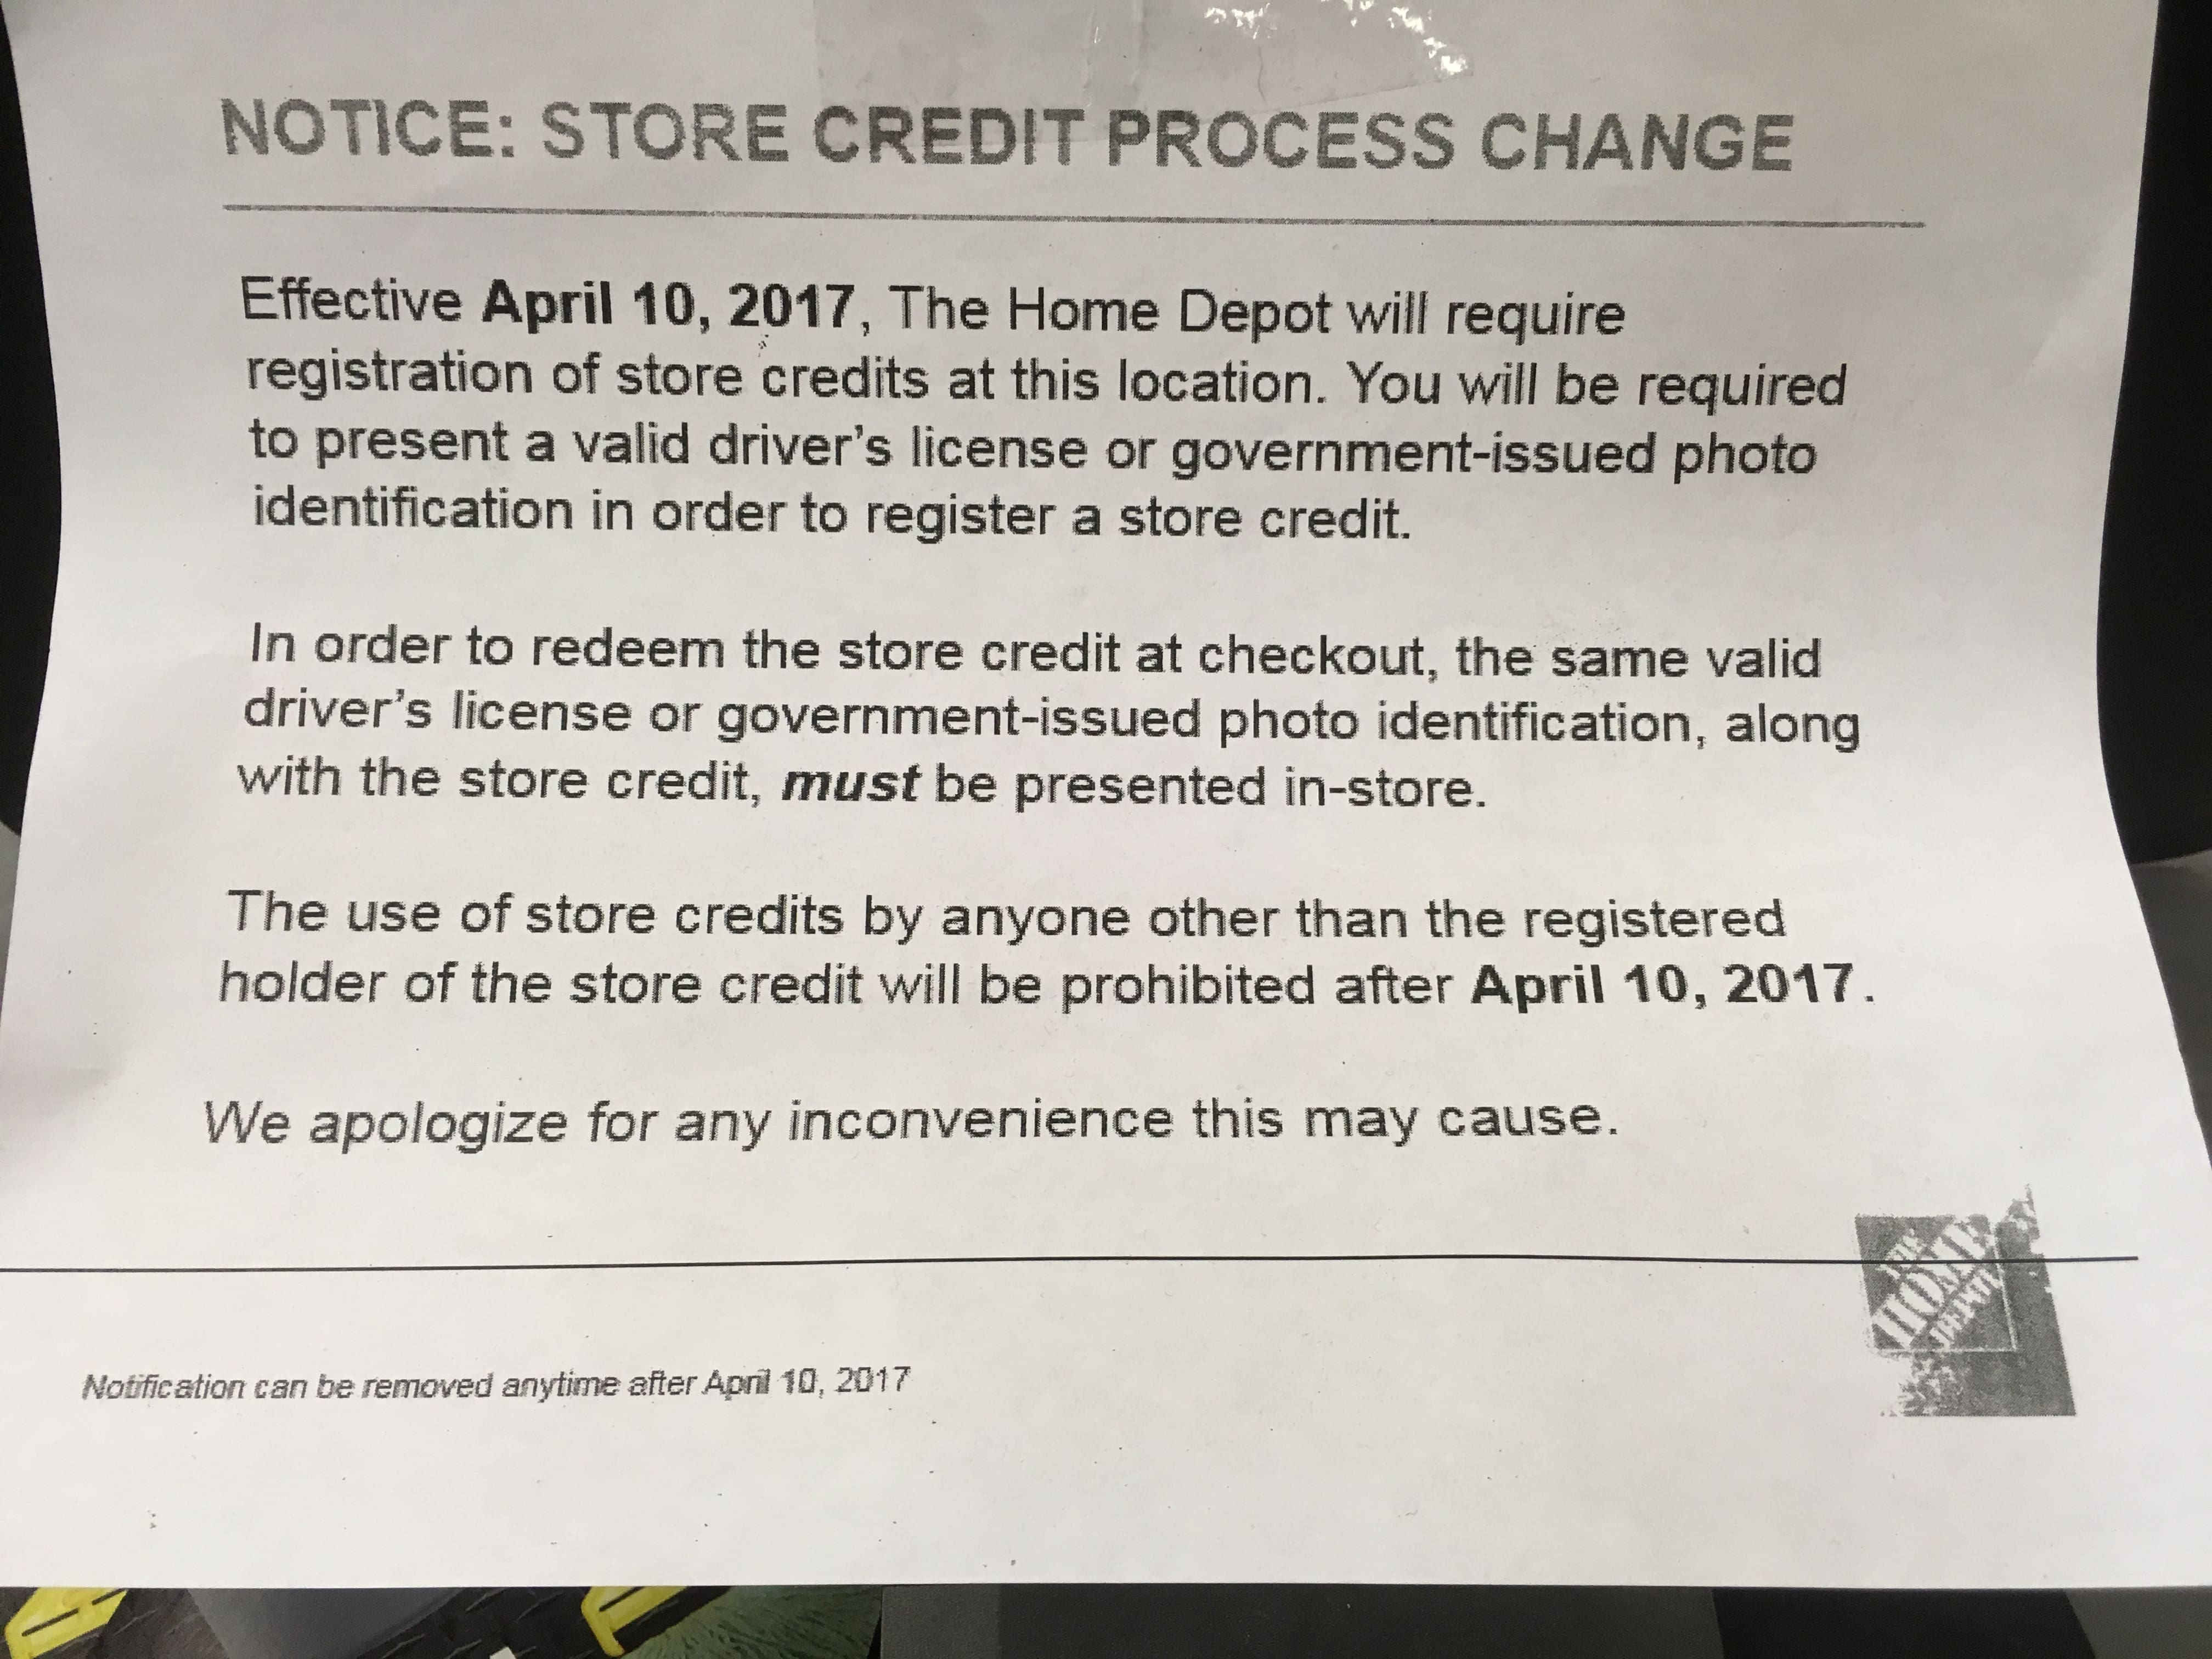 Home Depot Store Credit Policy Change Page 4 Slickdeals